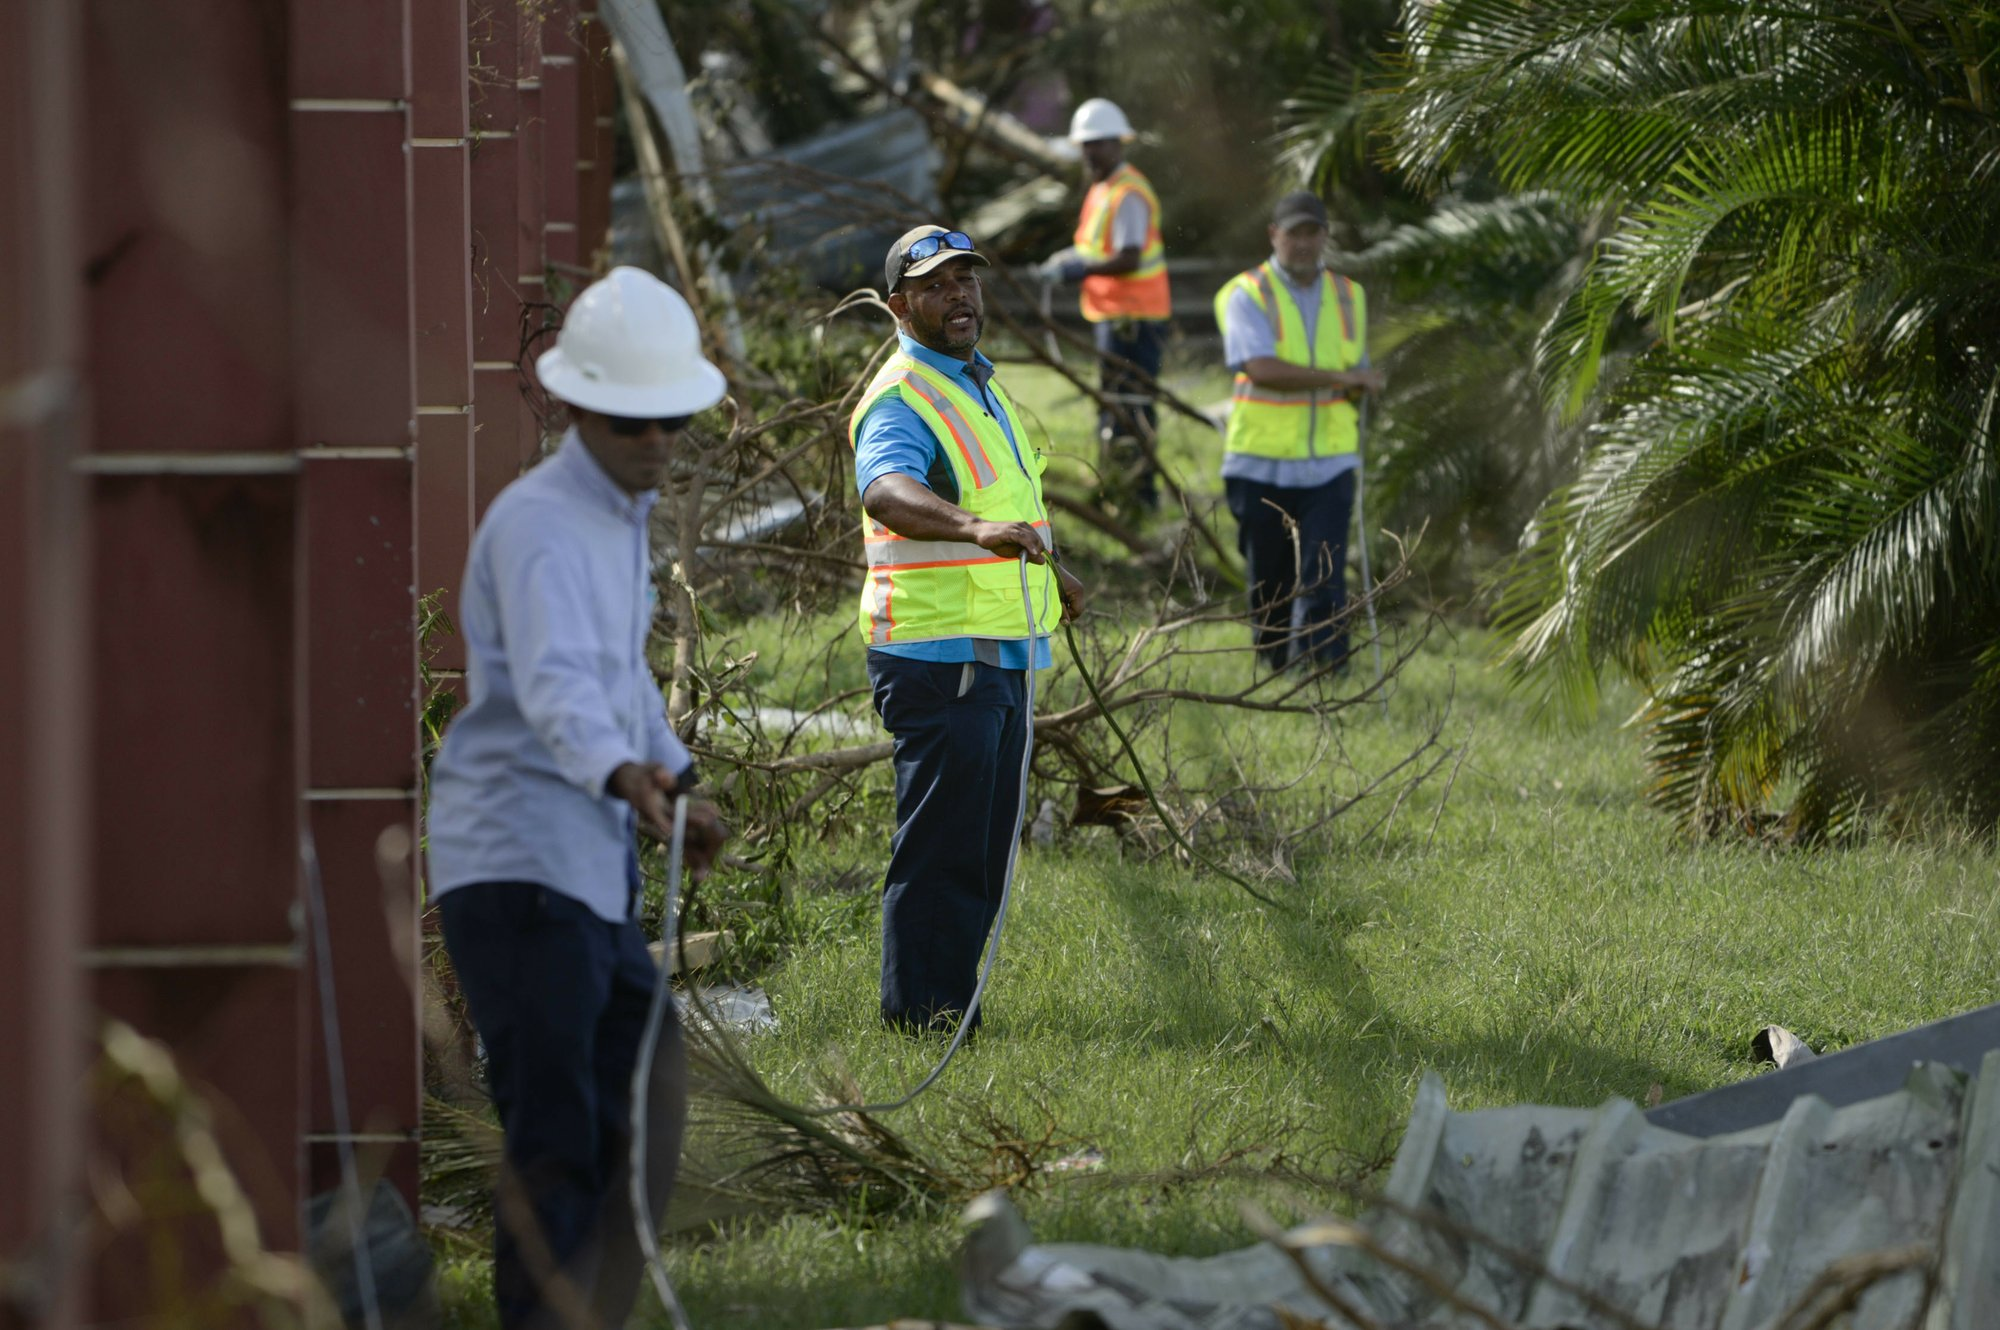 Report calls on FCC to probe storm aftermath in Puerto Rico